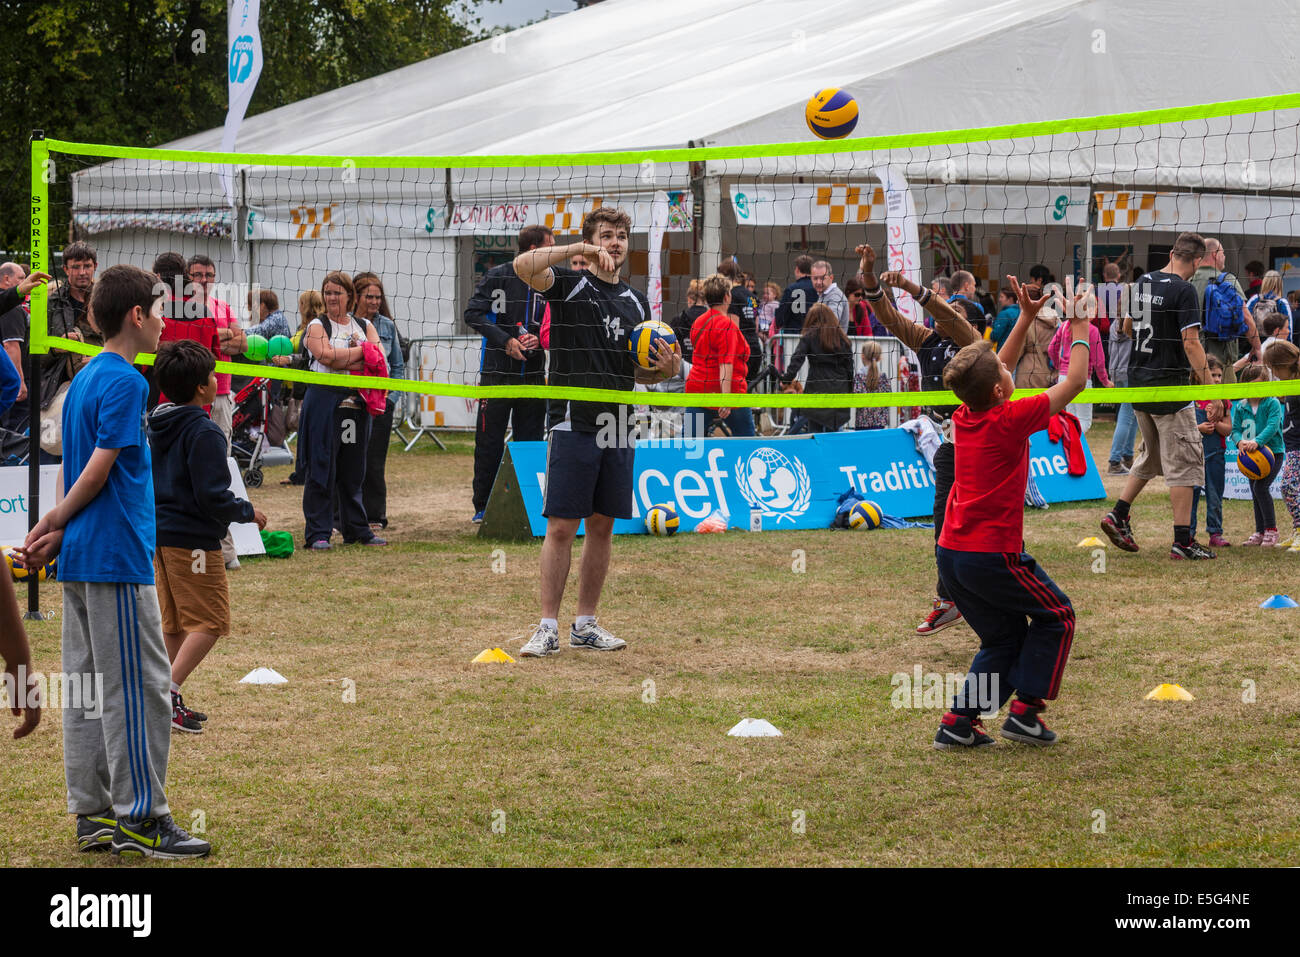 Glasgow, Scotland, UK. 30th July, 2014.  Boys trying out Volleyball on Glasgow Green during Festival 2014, a cultural - Stock Image